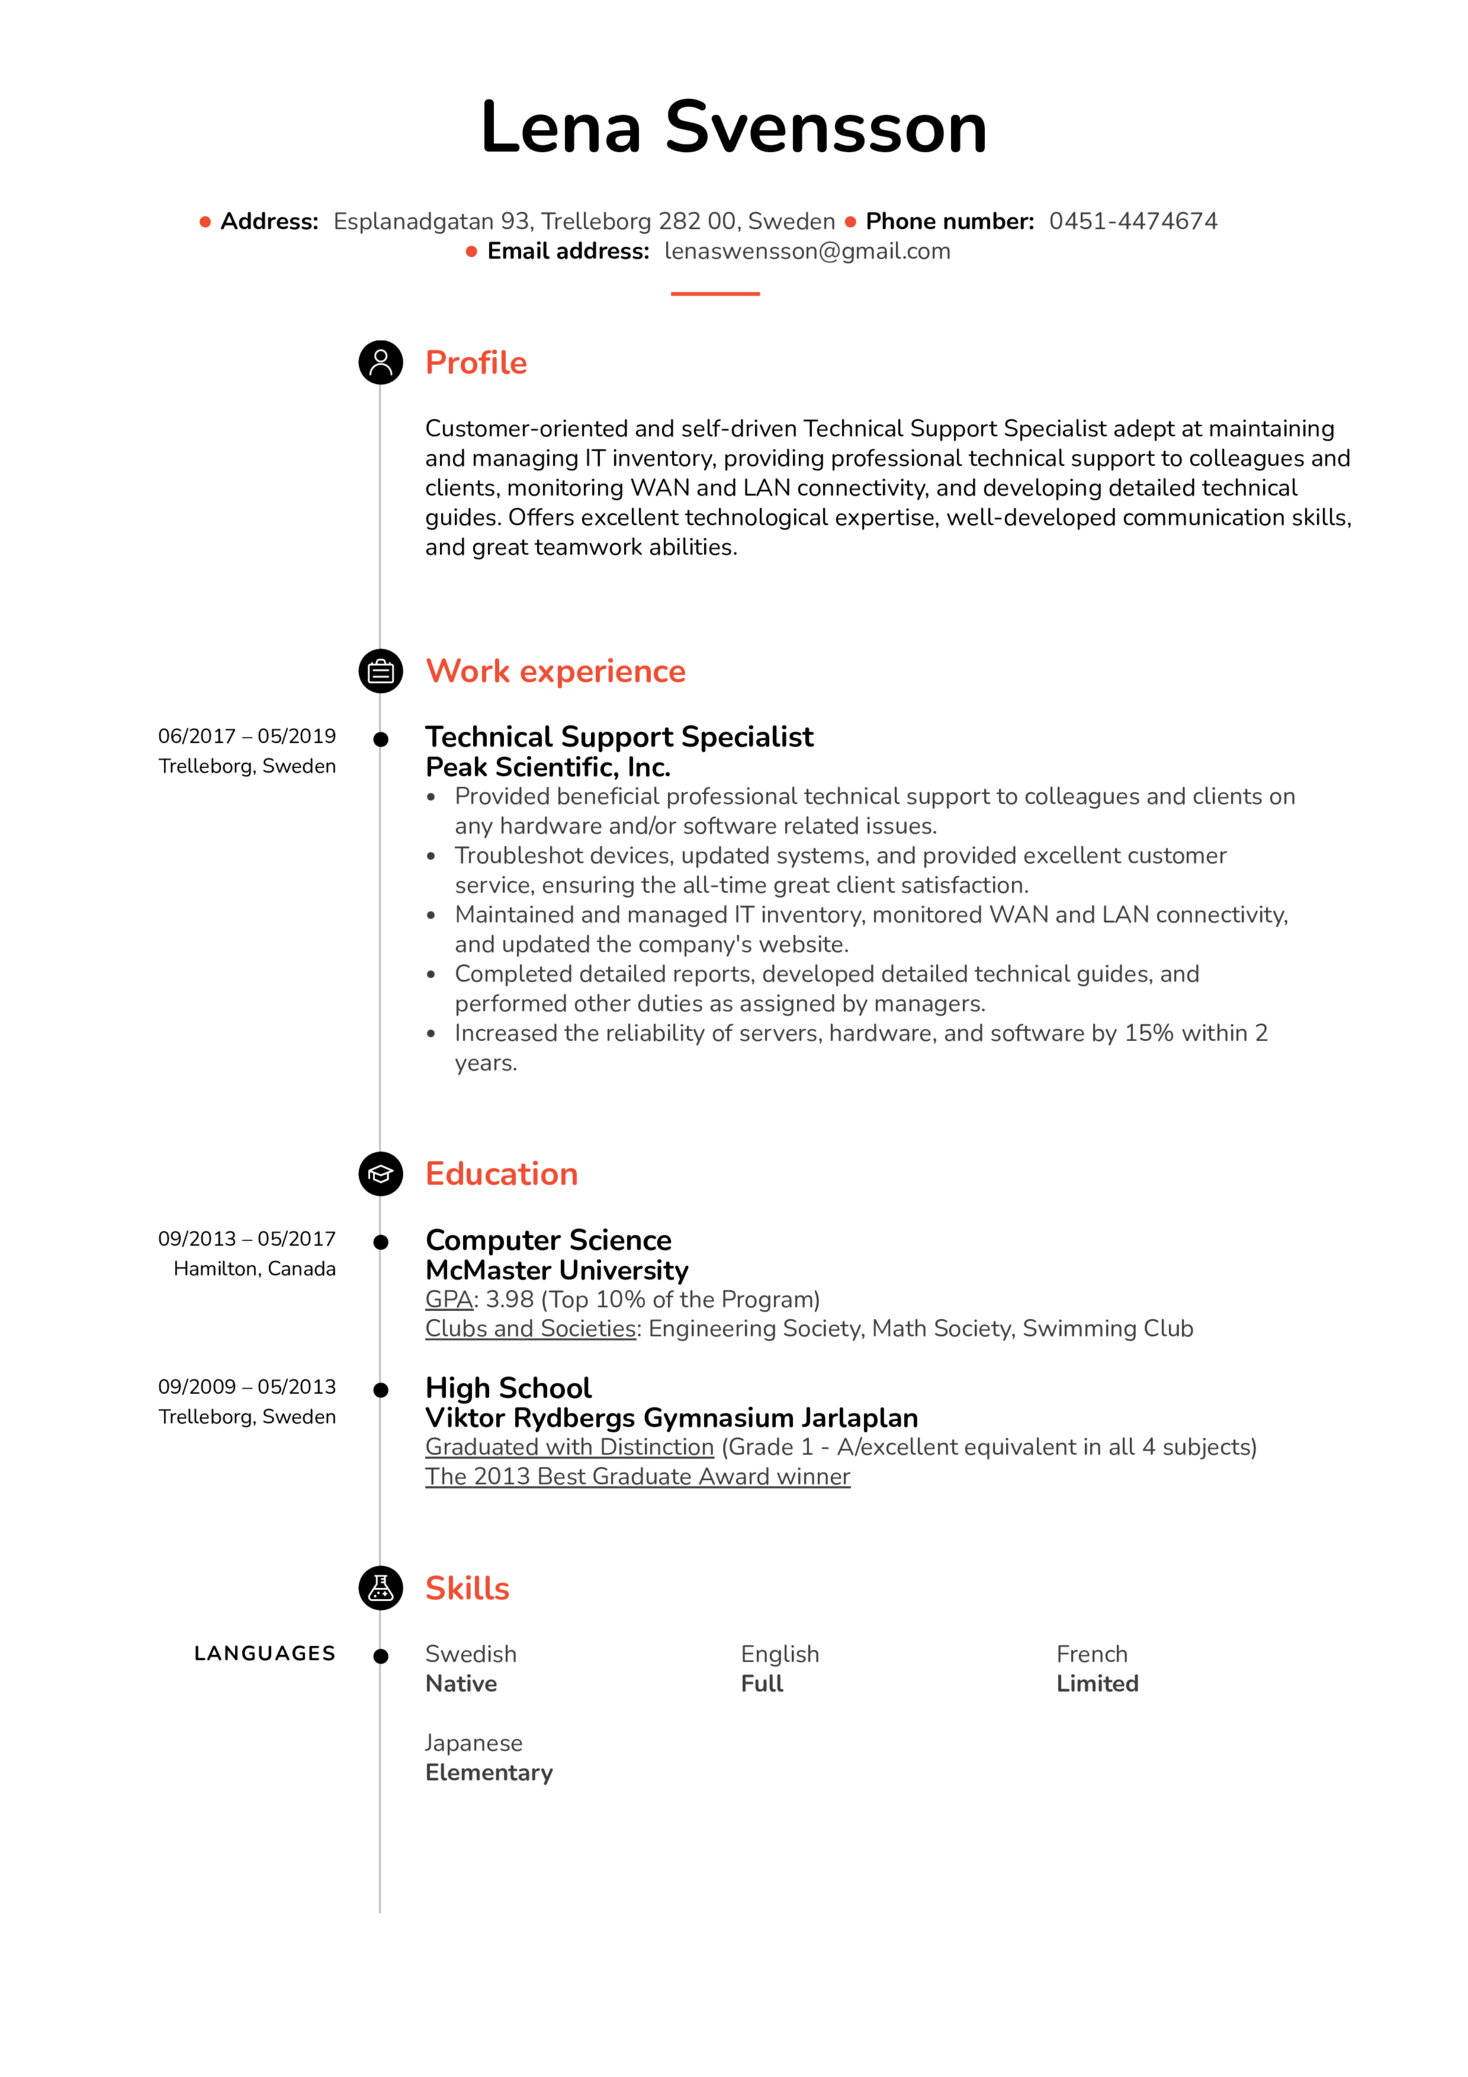 Technical Support Specialist Resume Example (Part 1)